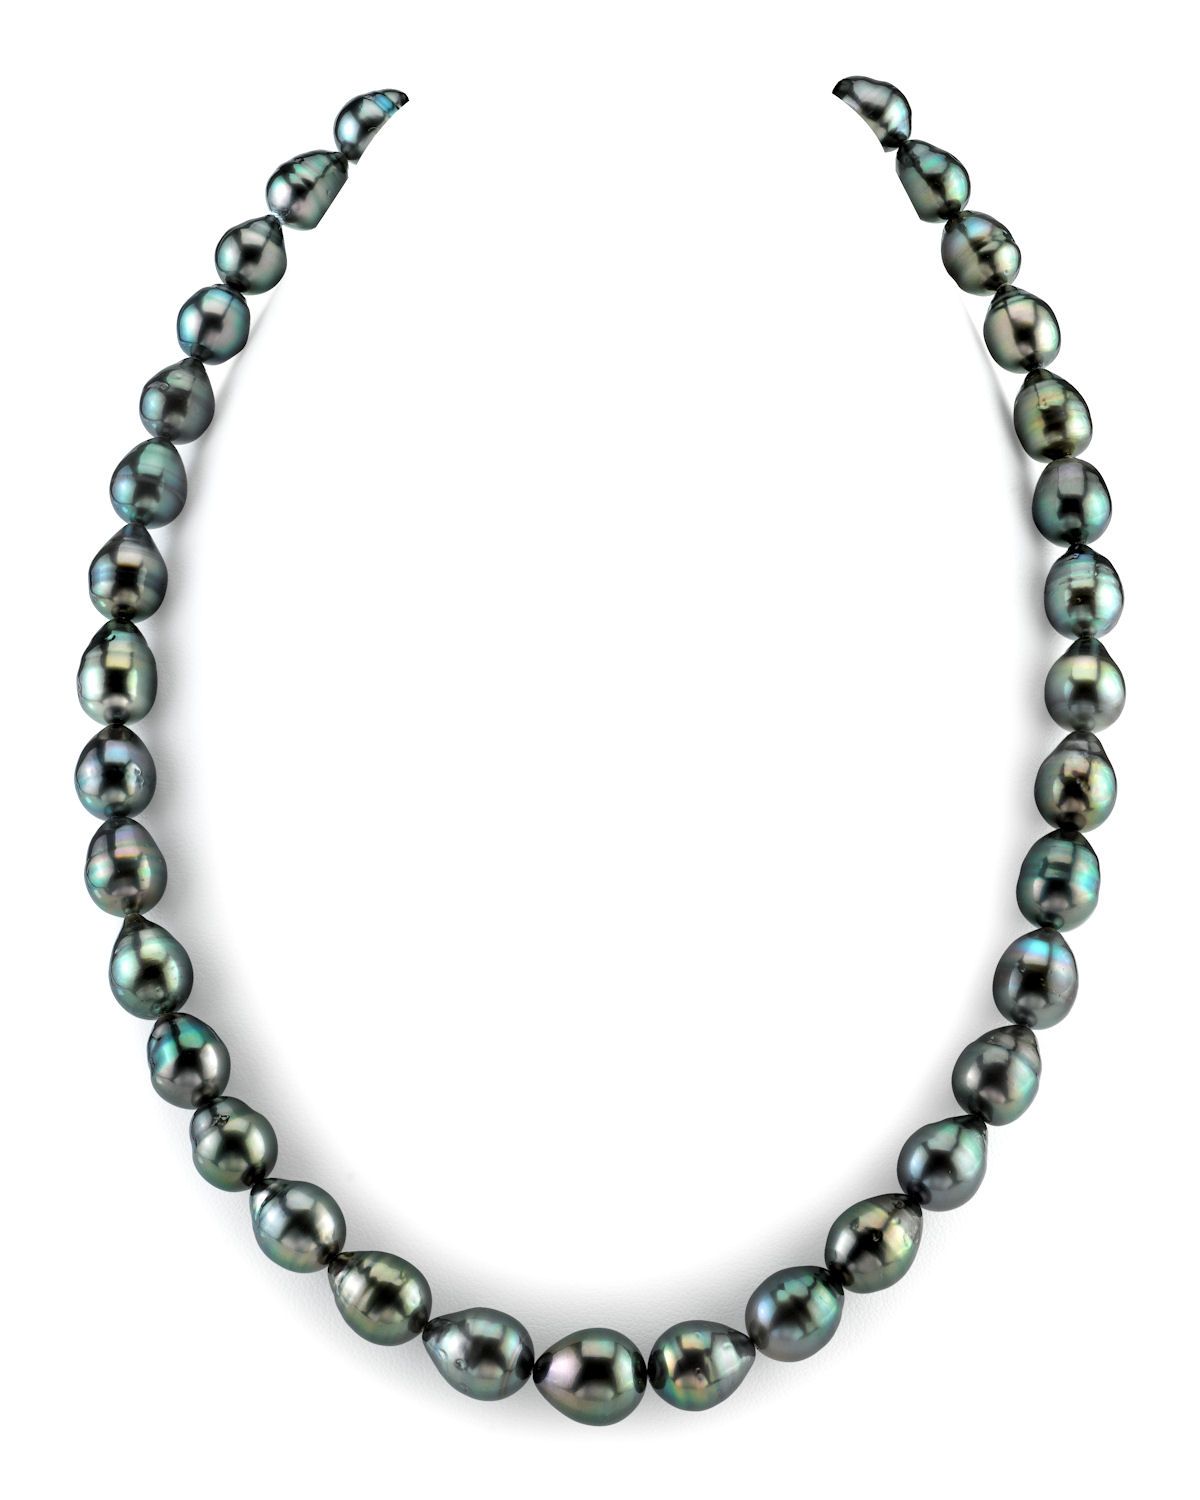 8-10mm Dark Tahitian South Sea Baroque Pearl Necklace